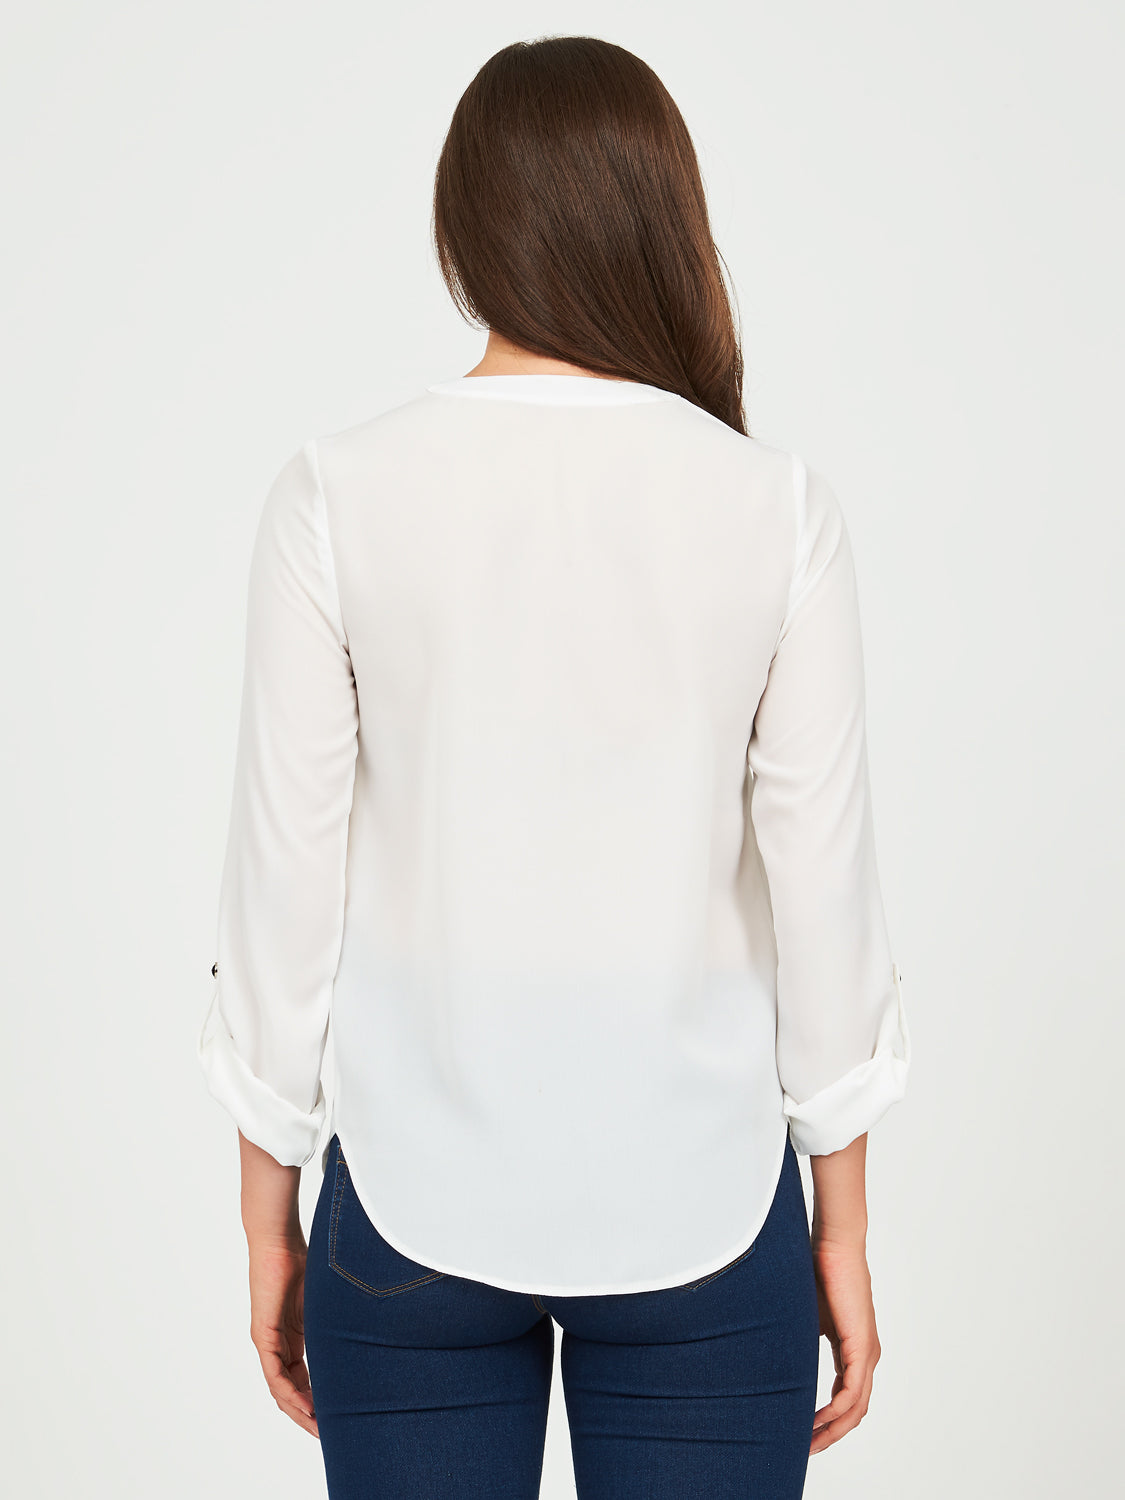 Long Sleeve Roll-Up Chiffon Blouse